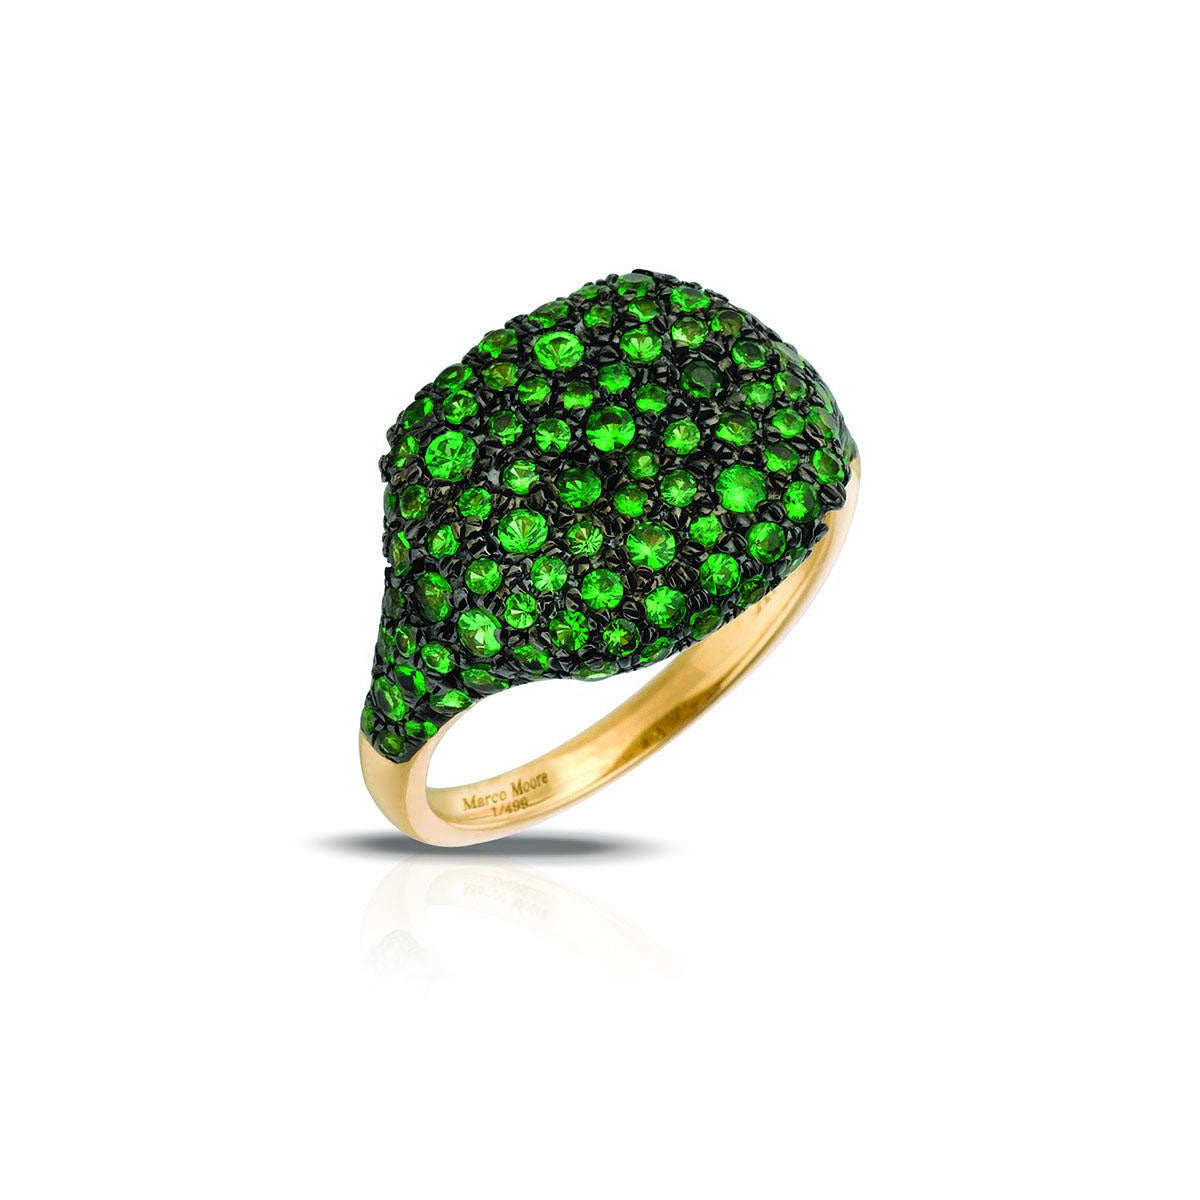 Marco Moore 14K Yellow Gold Tsavorite Ring